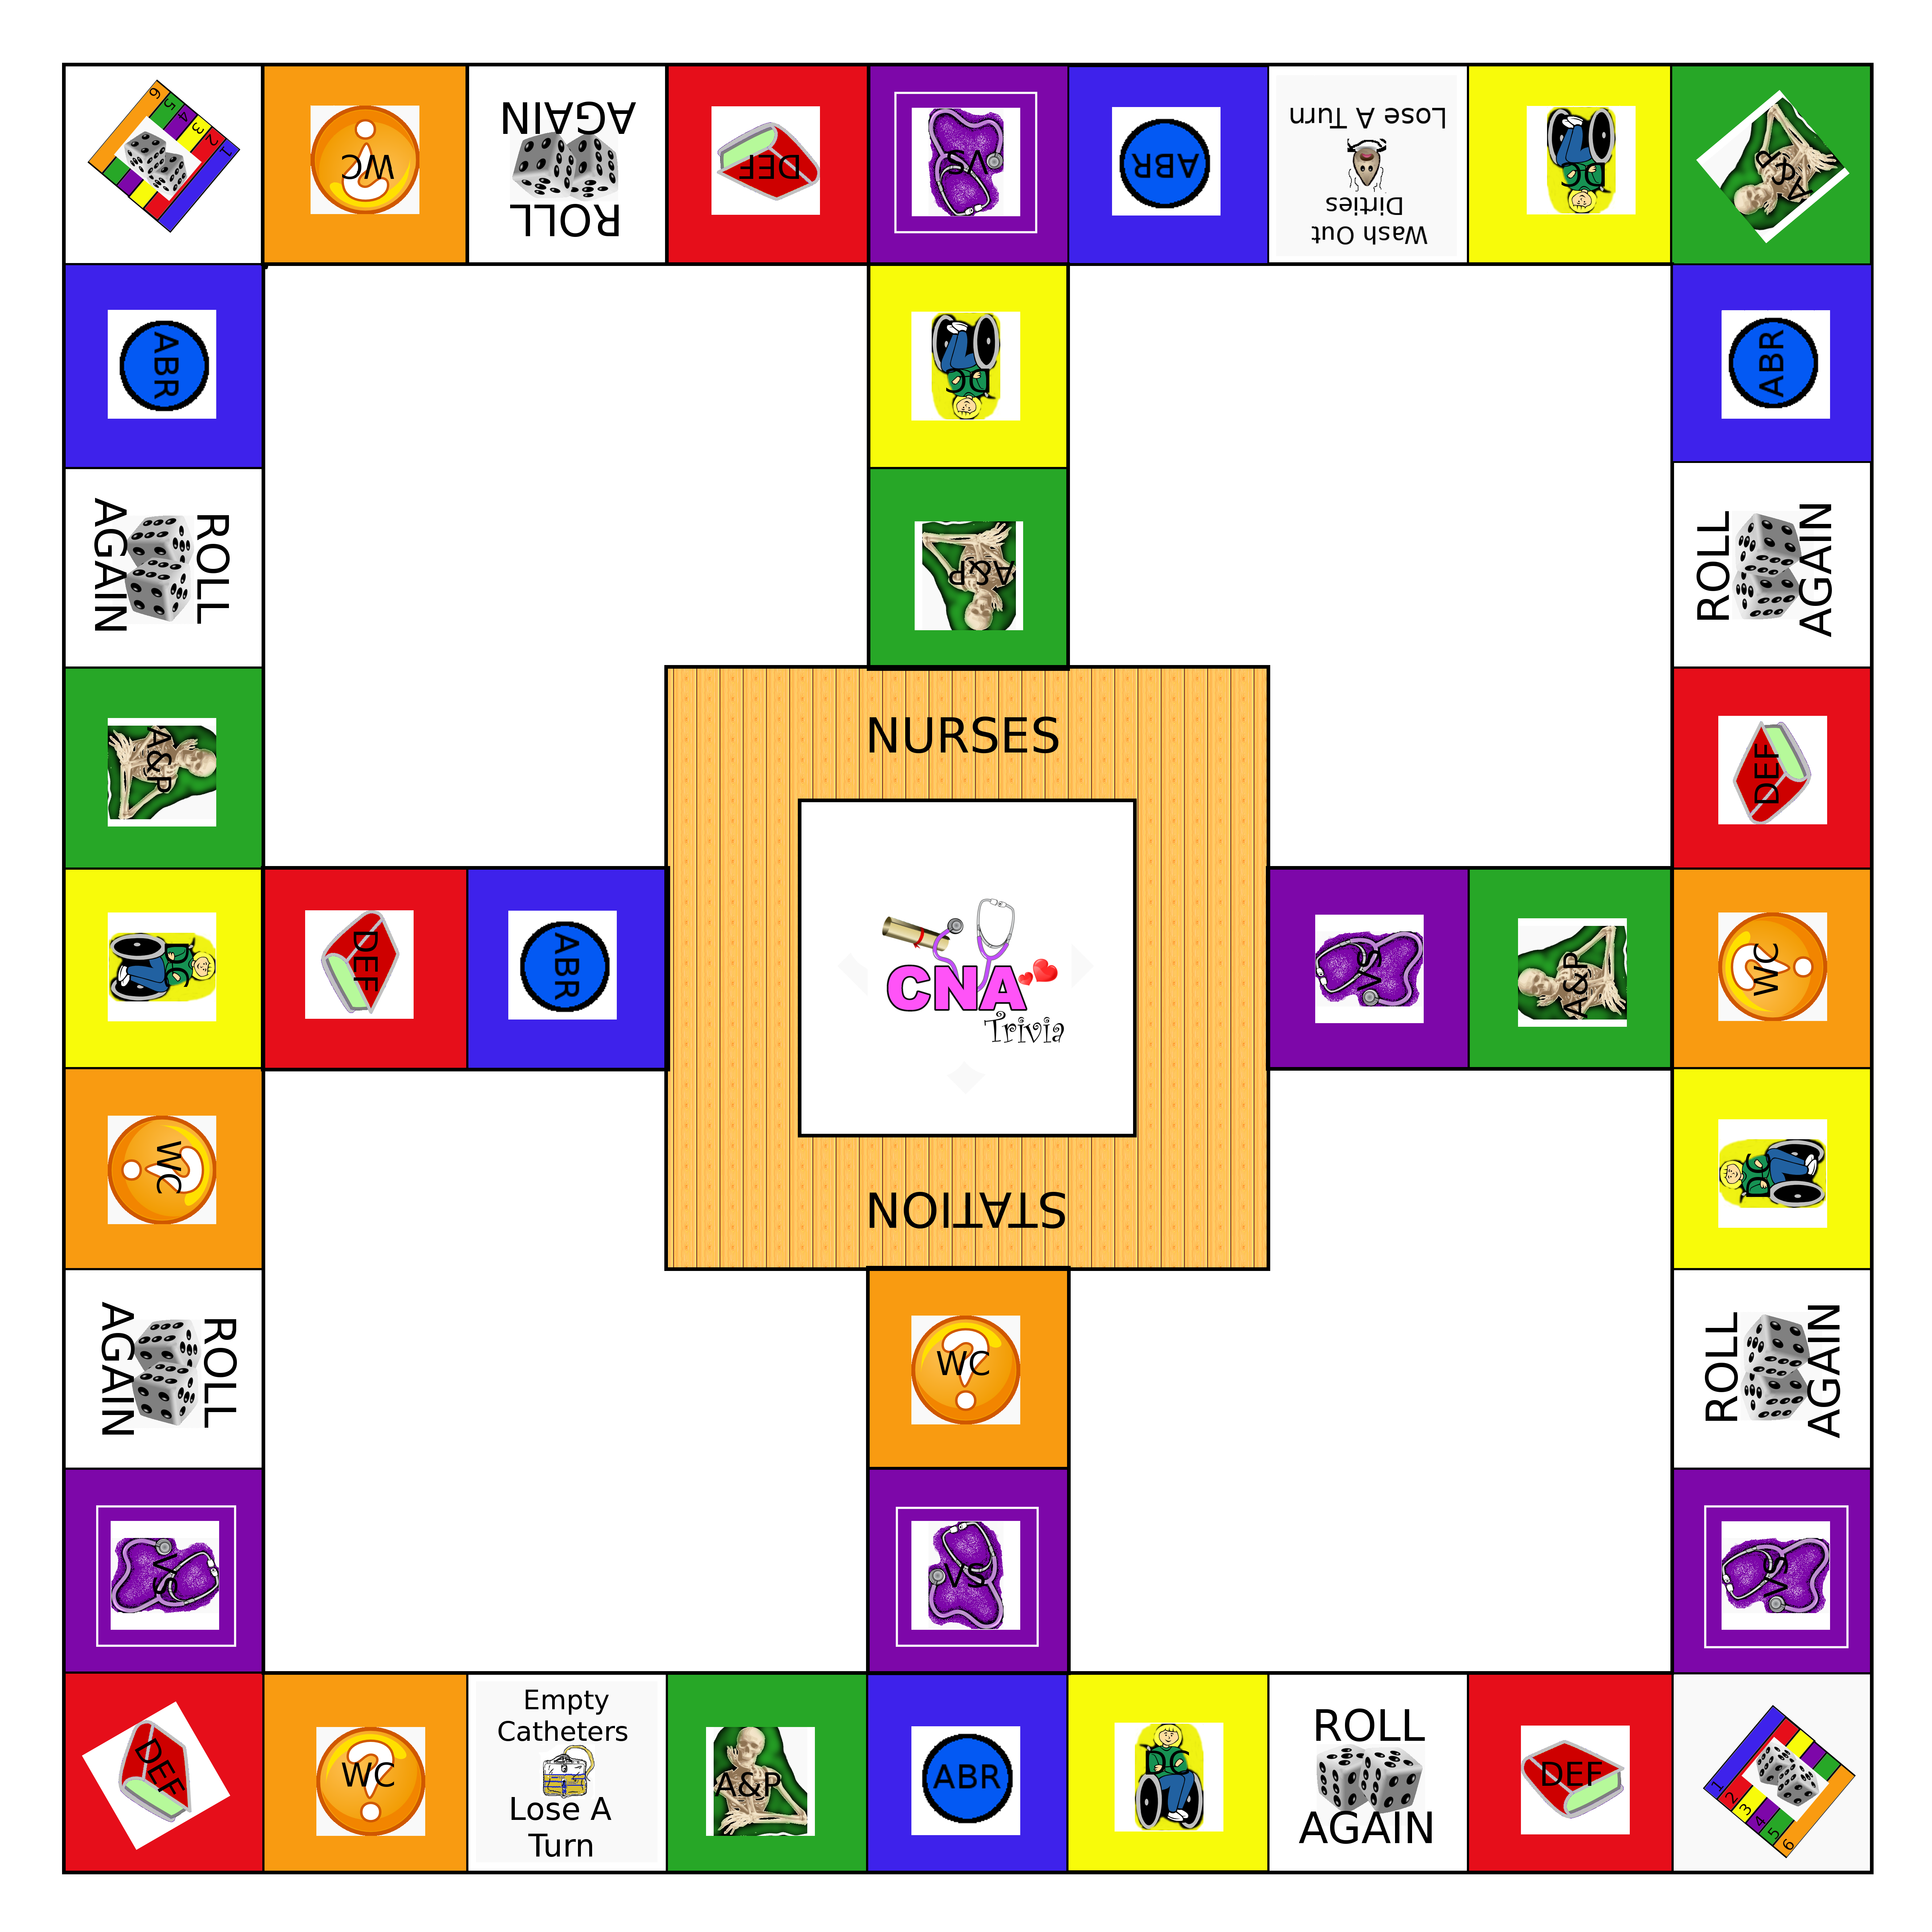 Cna trivia is an exciting trivia game designed for nurses cna trivia is an exciting trivia game designed for nurses assistants and others in the medical 1betcityfo Choice Image